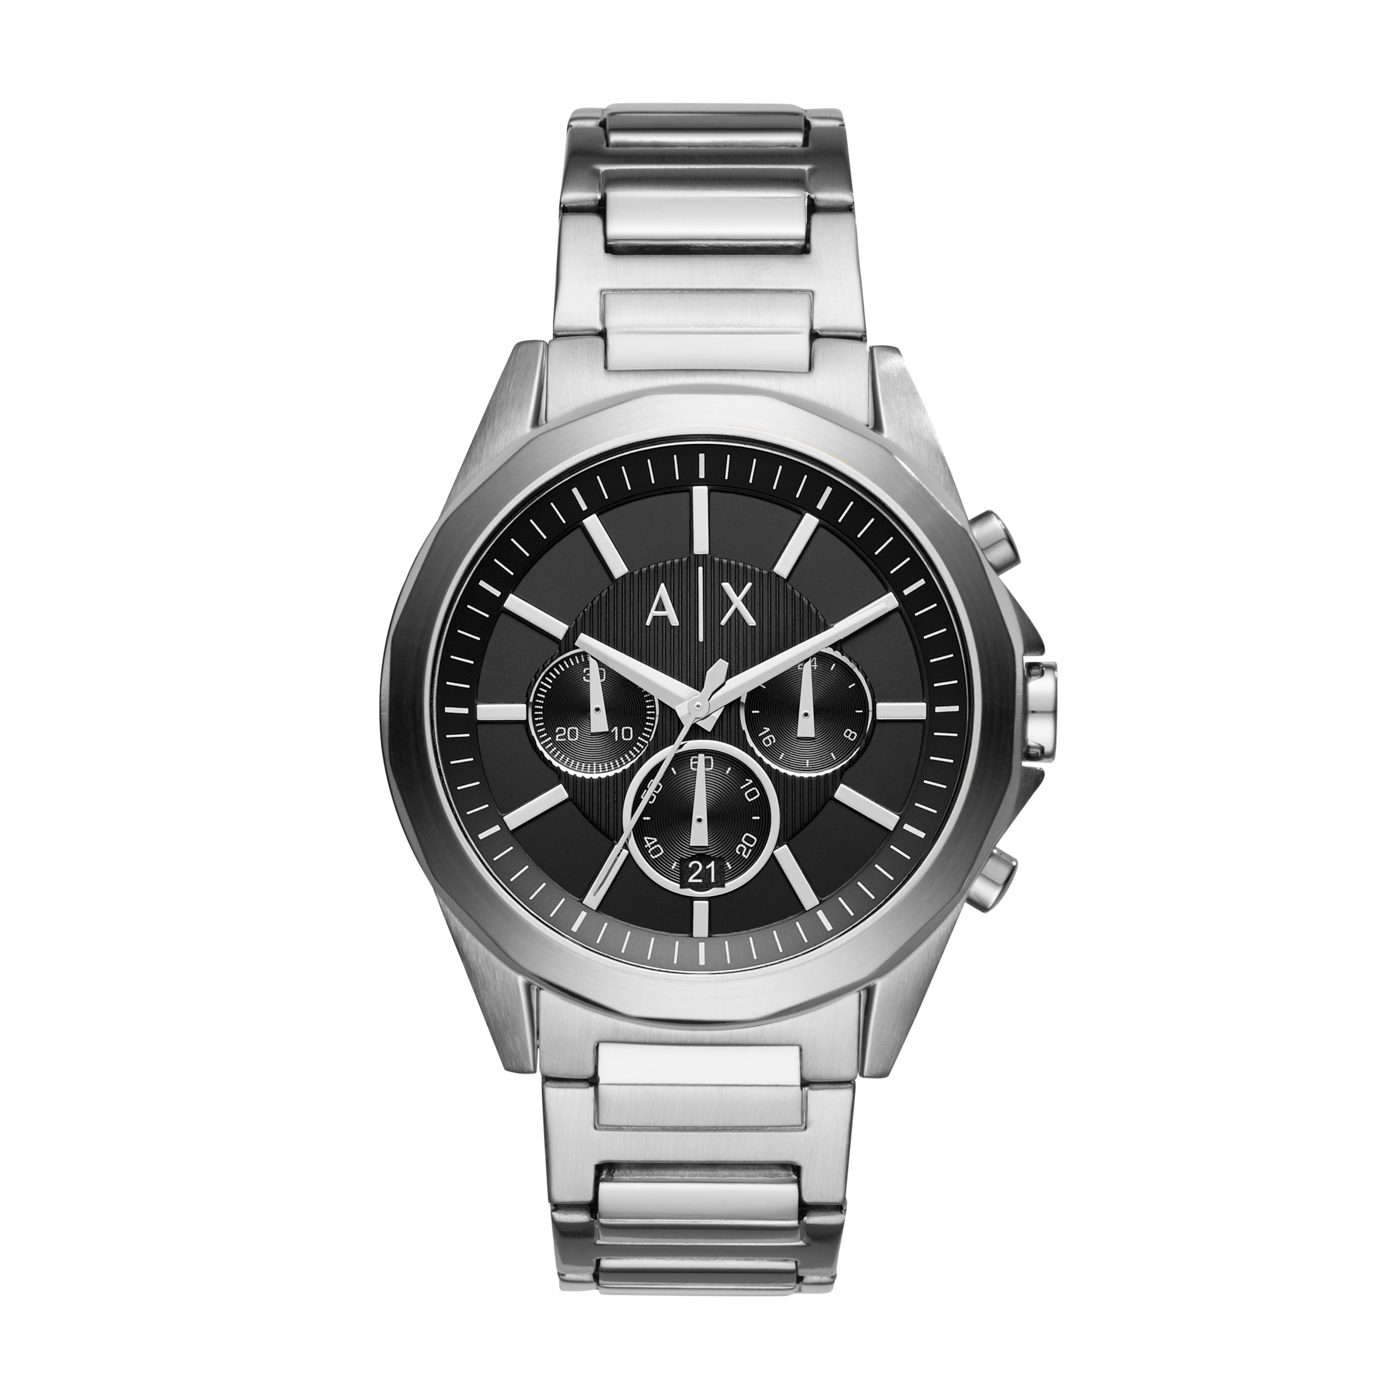 Bilde av Armani Exchange Drexler watch AX2600